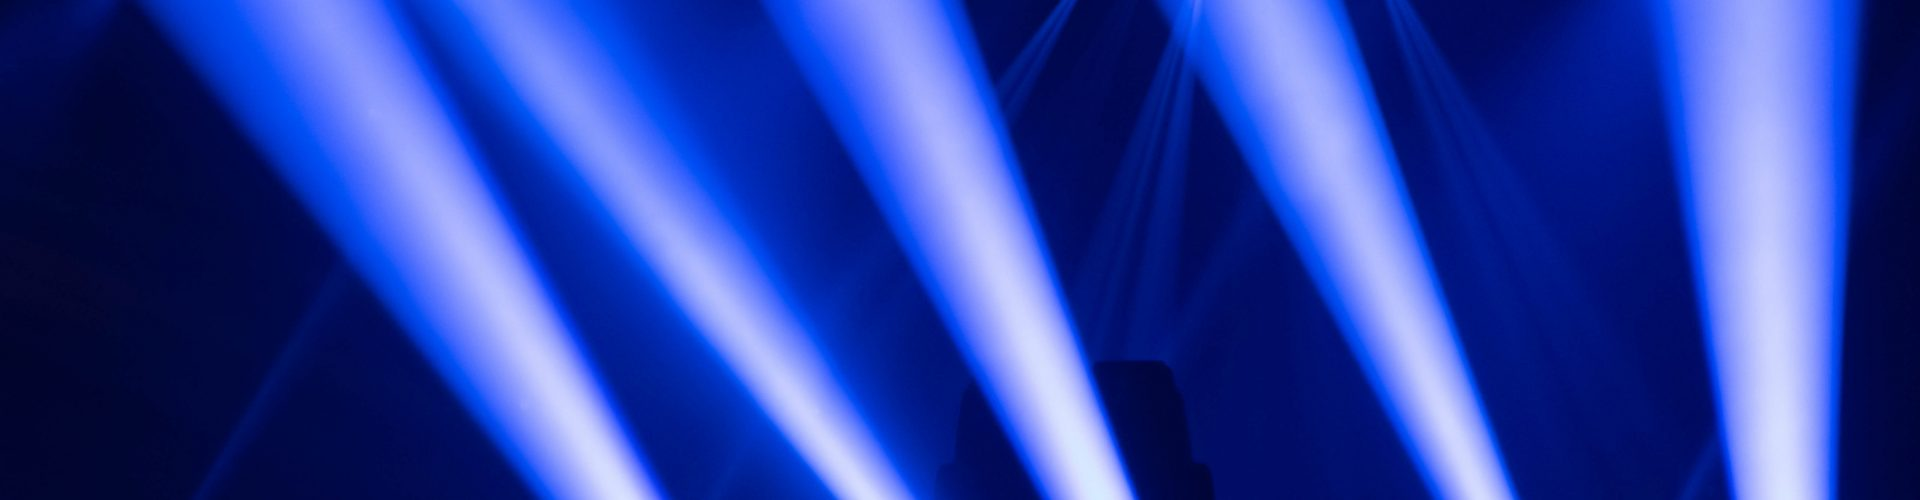 Scene, stage lights with colored spotlights and smoke, laser lights background, white and blue